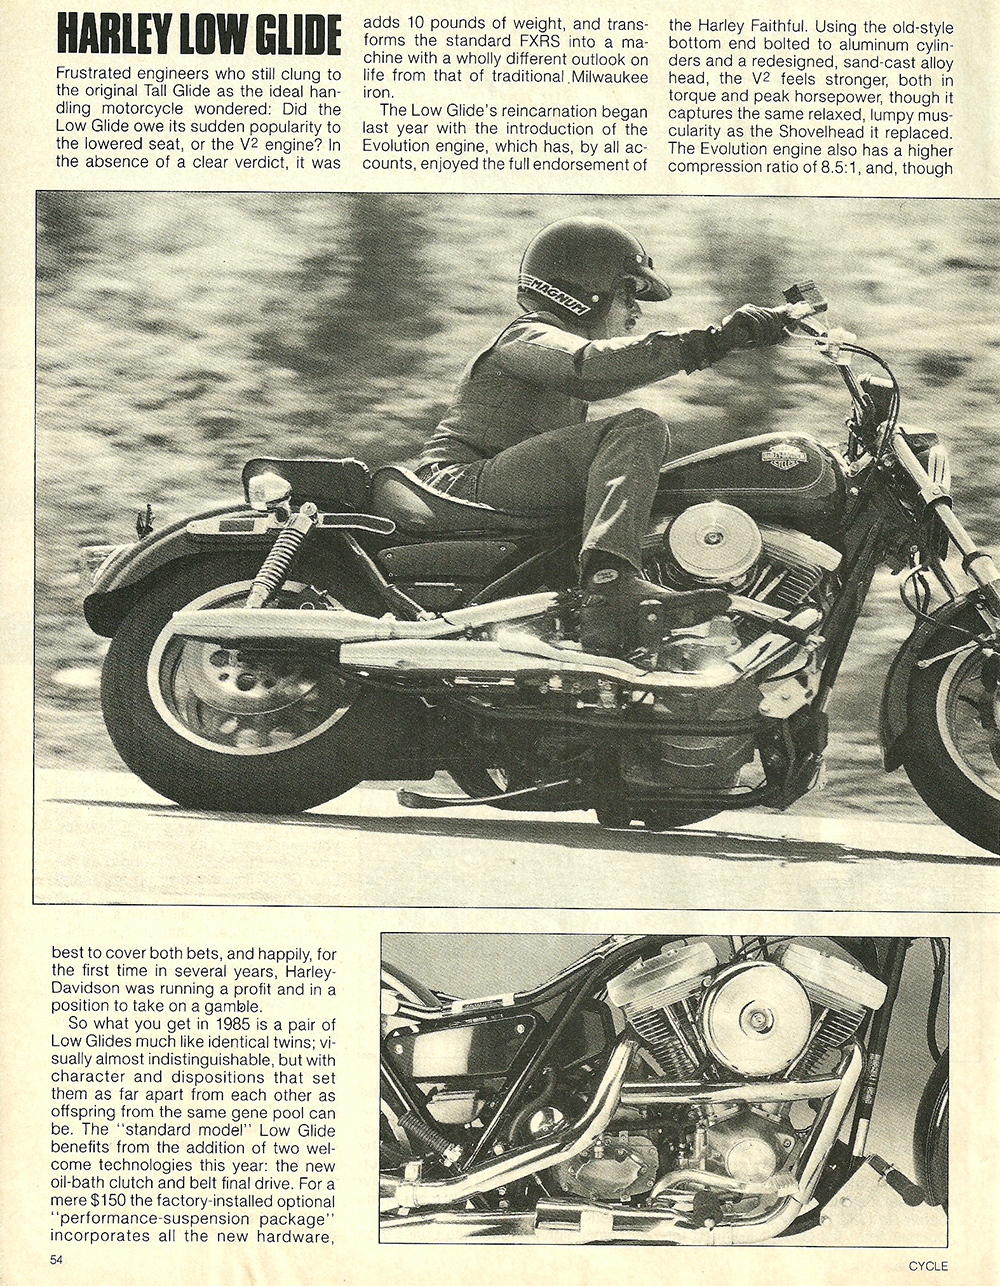 1984 Harley-Davidson Low Glide FXRS road test 5.jpg